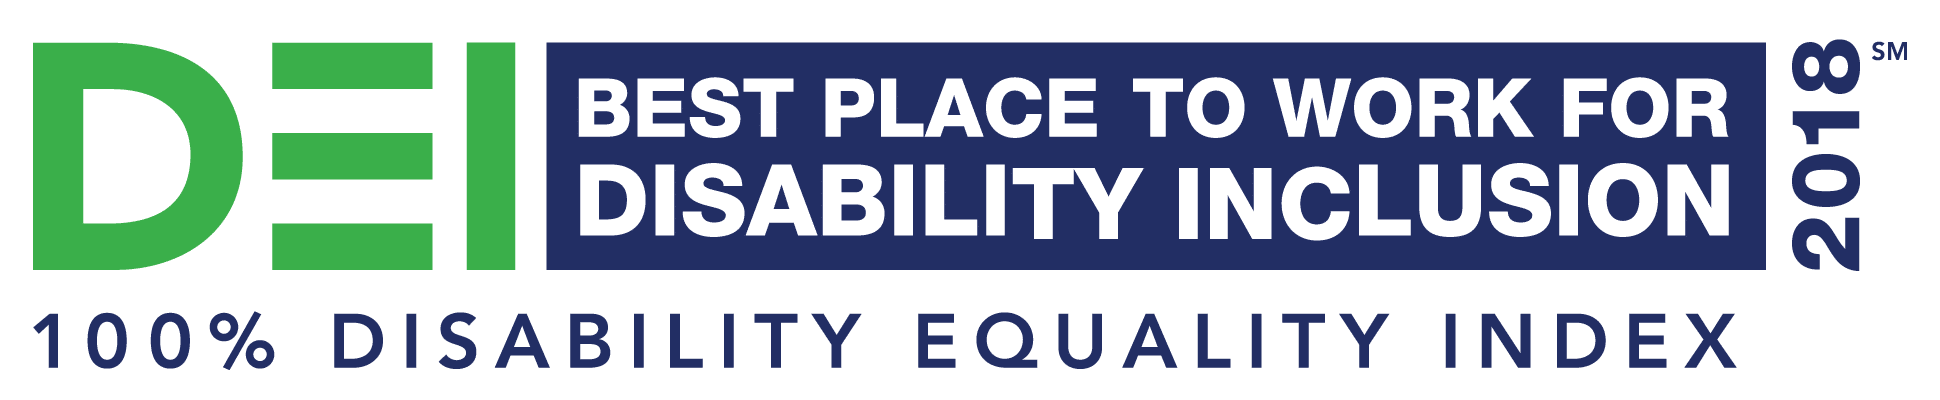 Best Places to Work 2018 Disability Equality Index logo